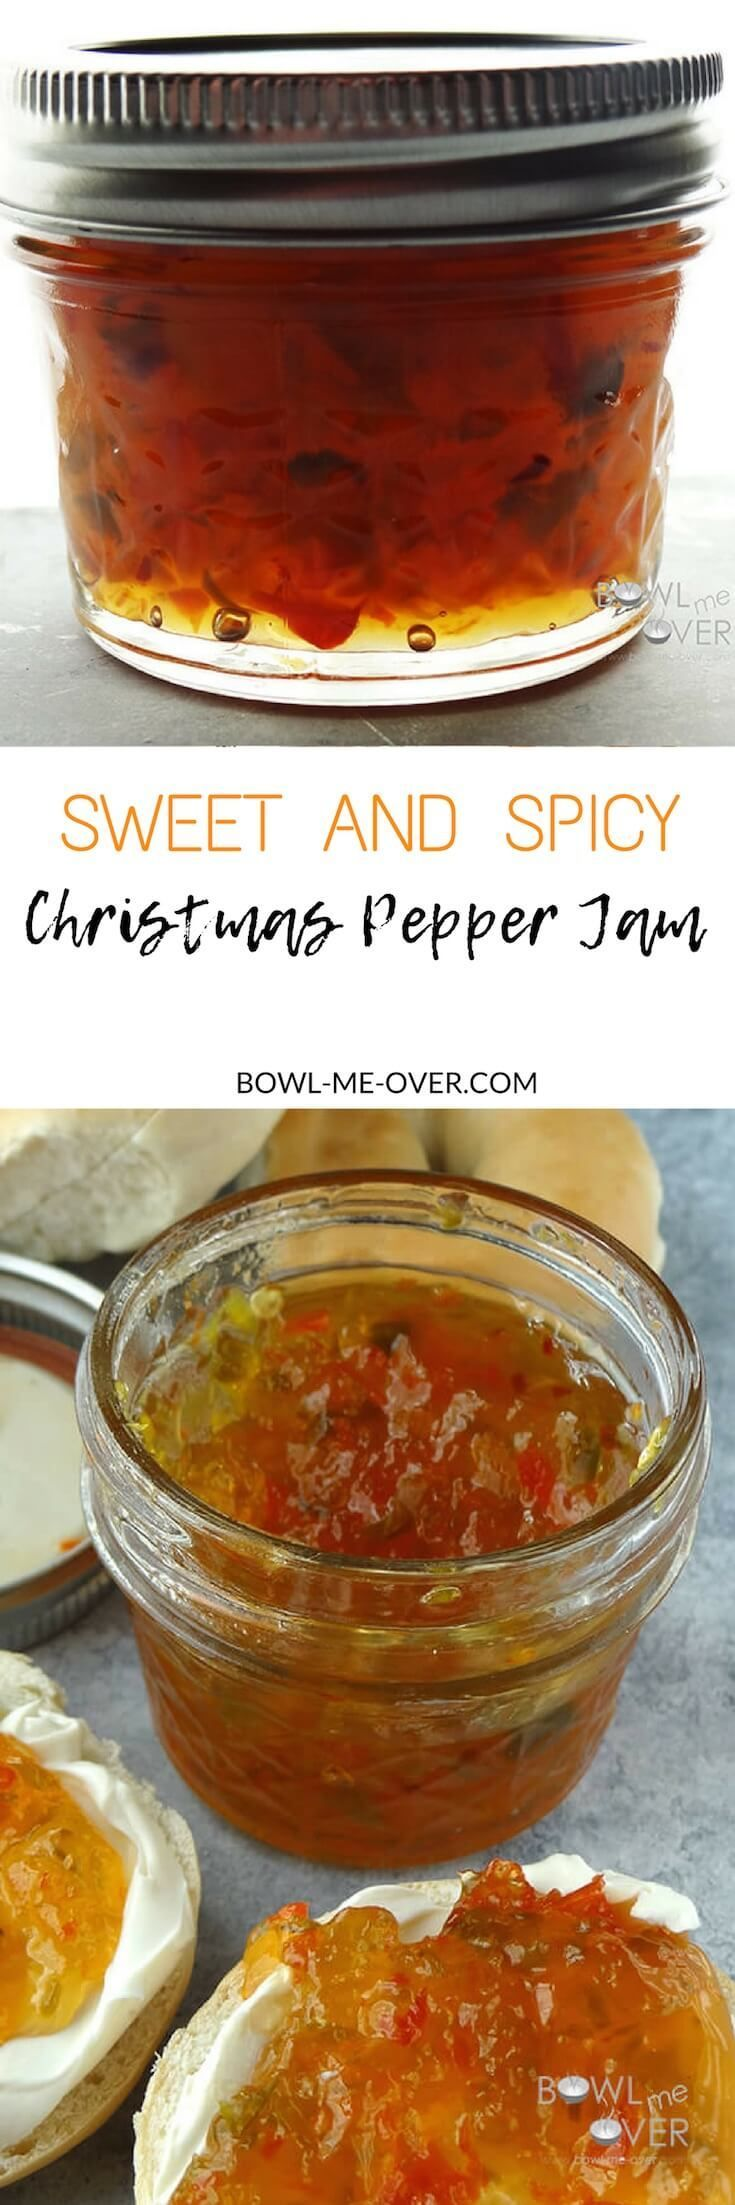 Christmas in July Pepper Jam - This jam is AMAZING. On a toasted bagel with some cream cheese and a spoonful of jam...delish!